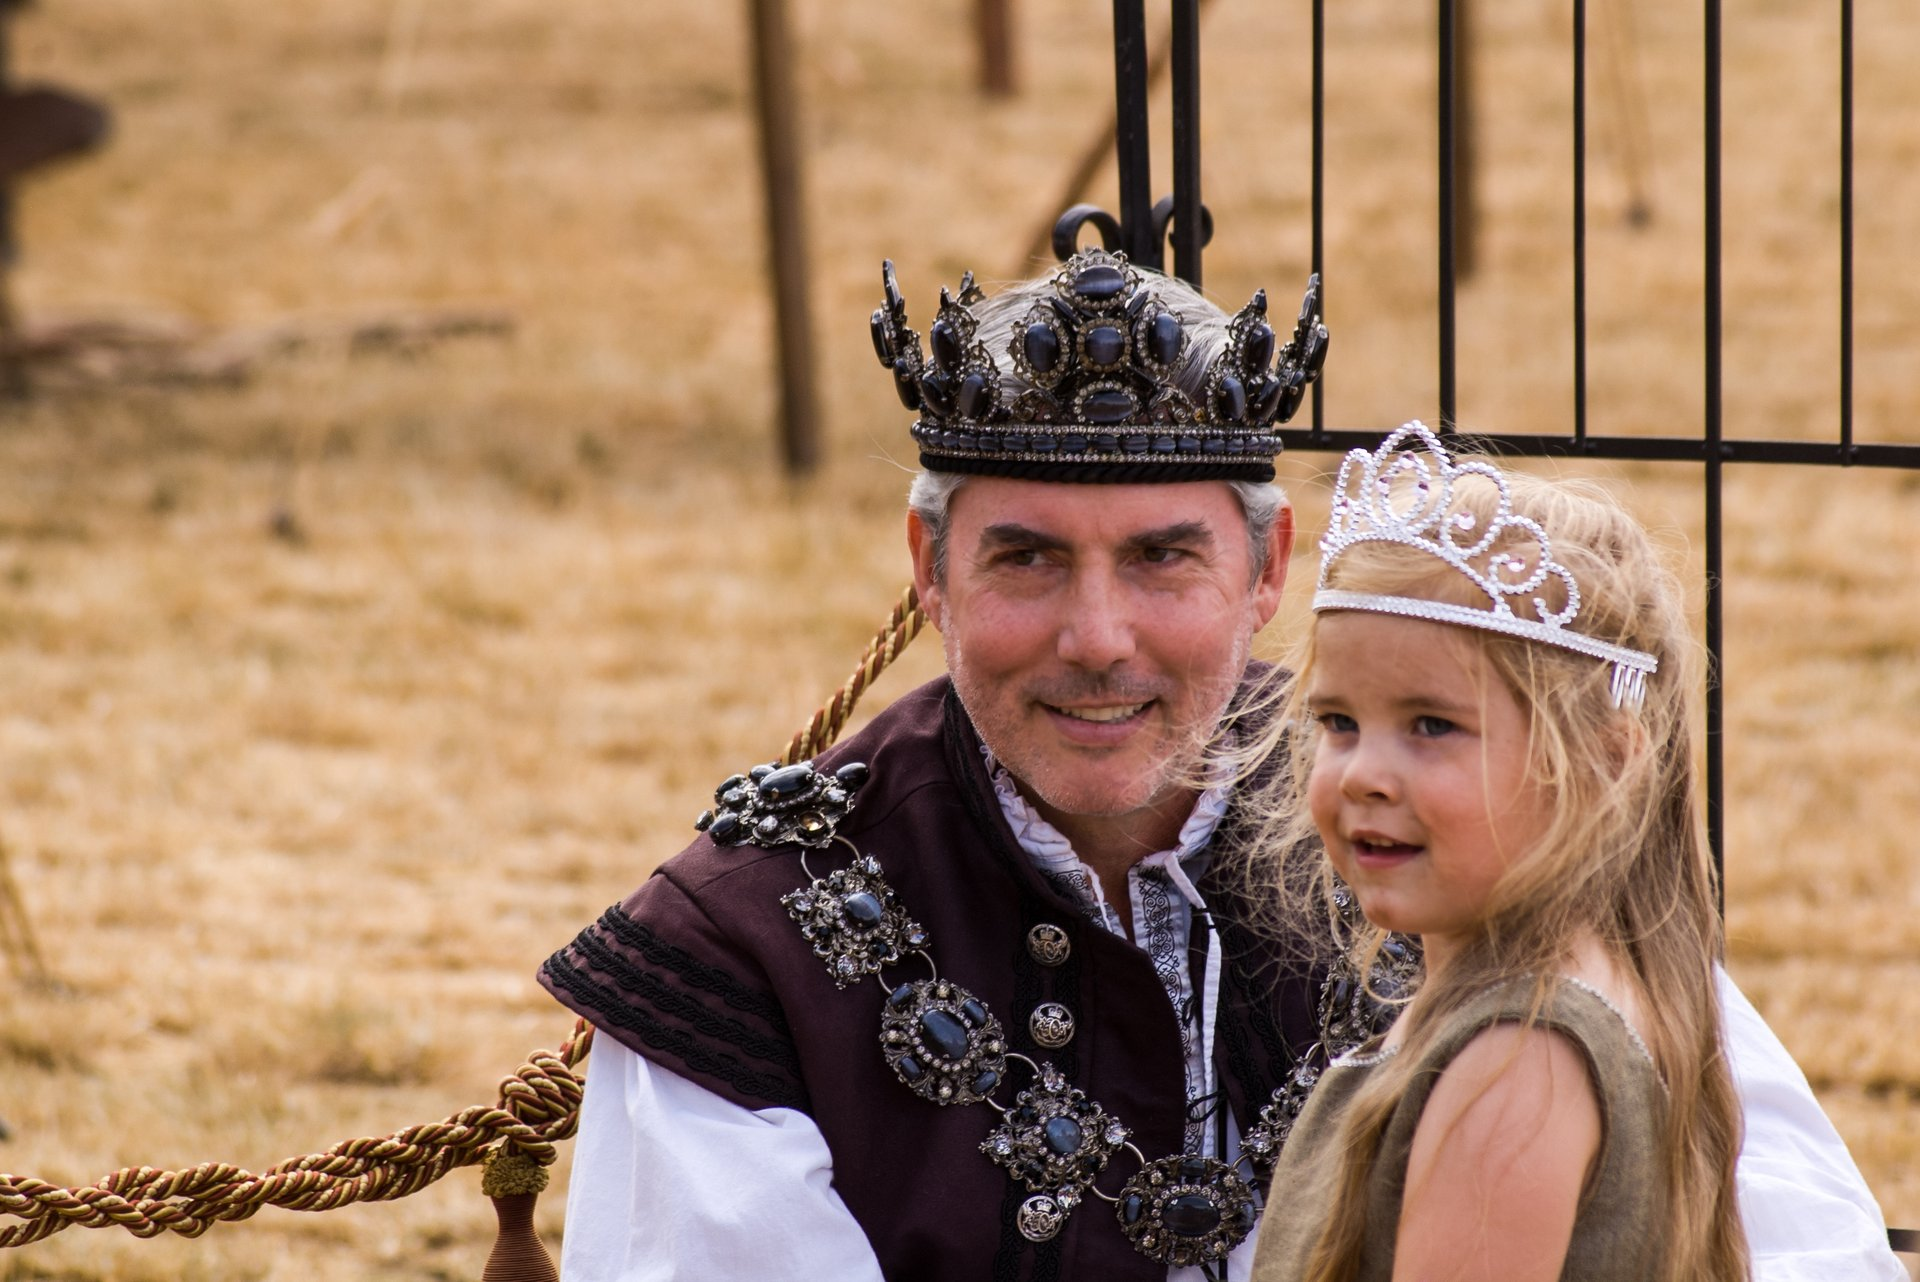 Best time to see Shrewsbury Renaissance Faire in Oregon 2020